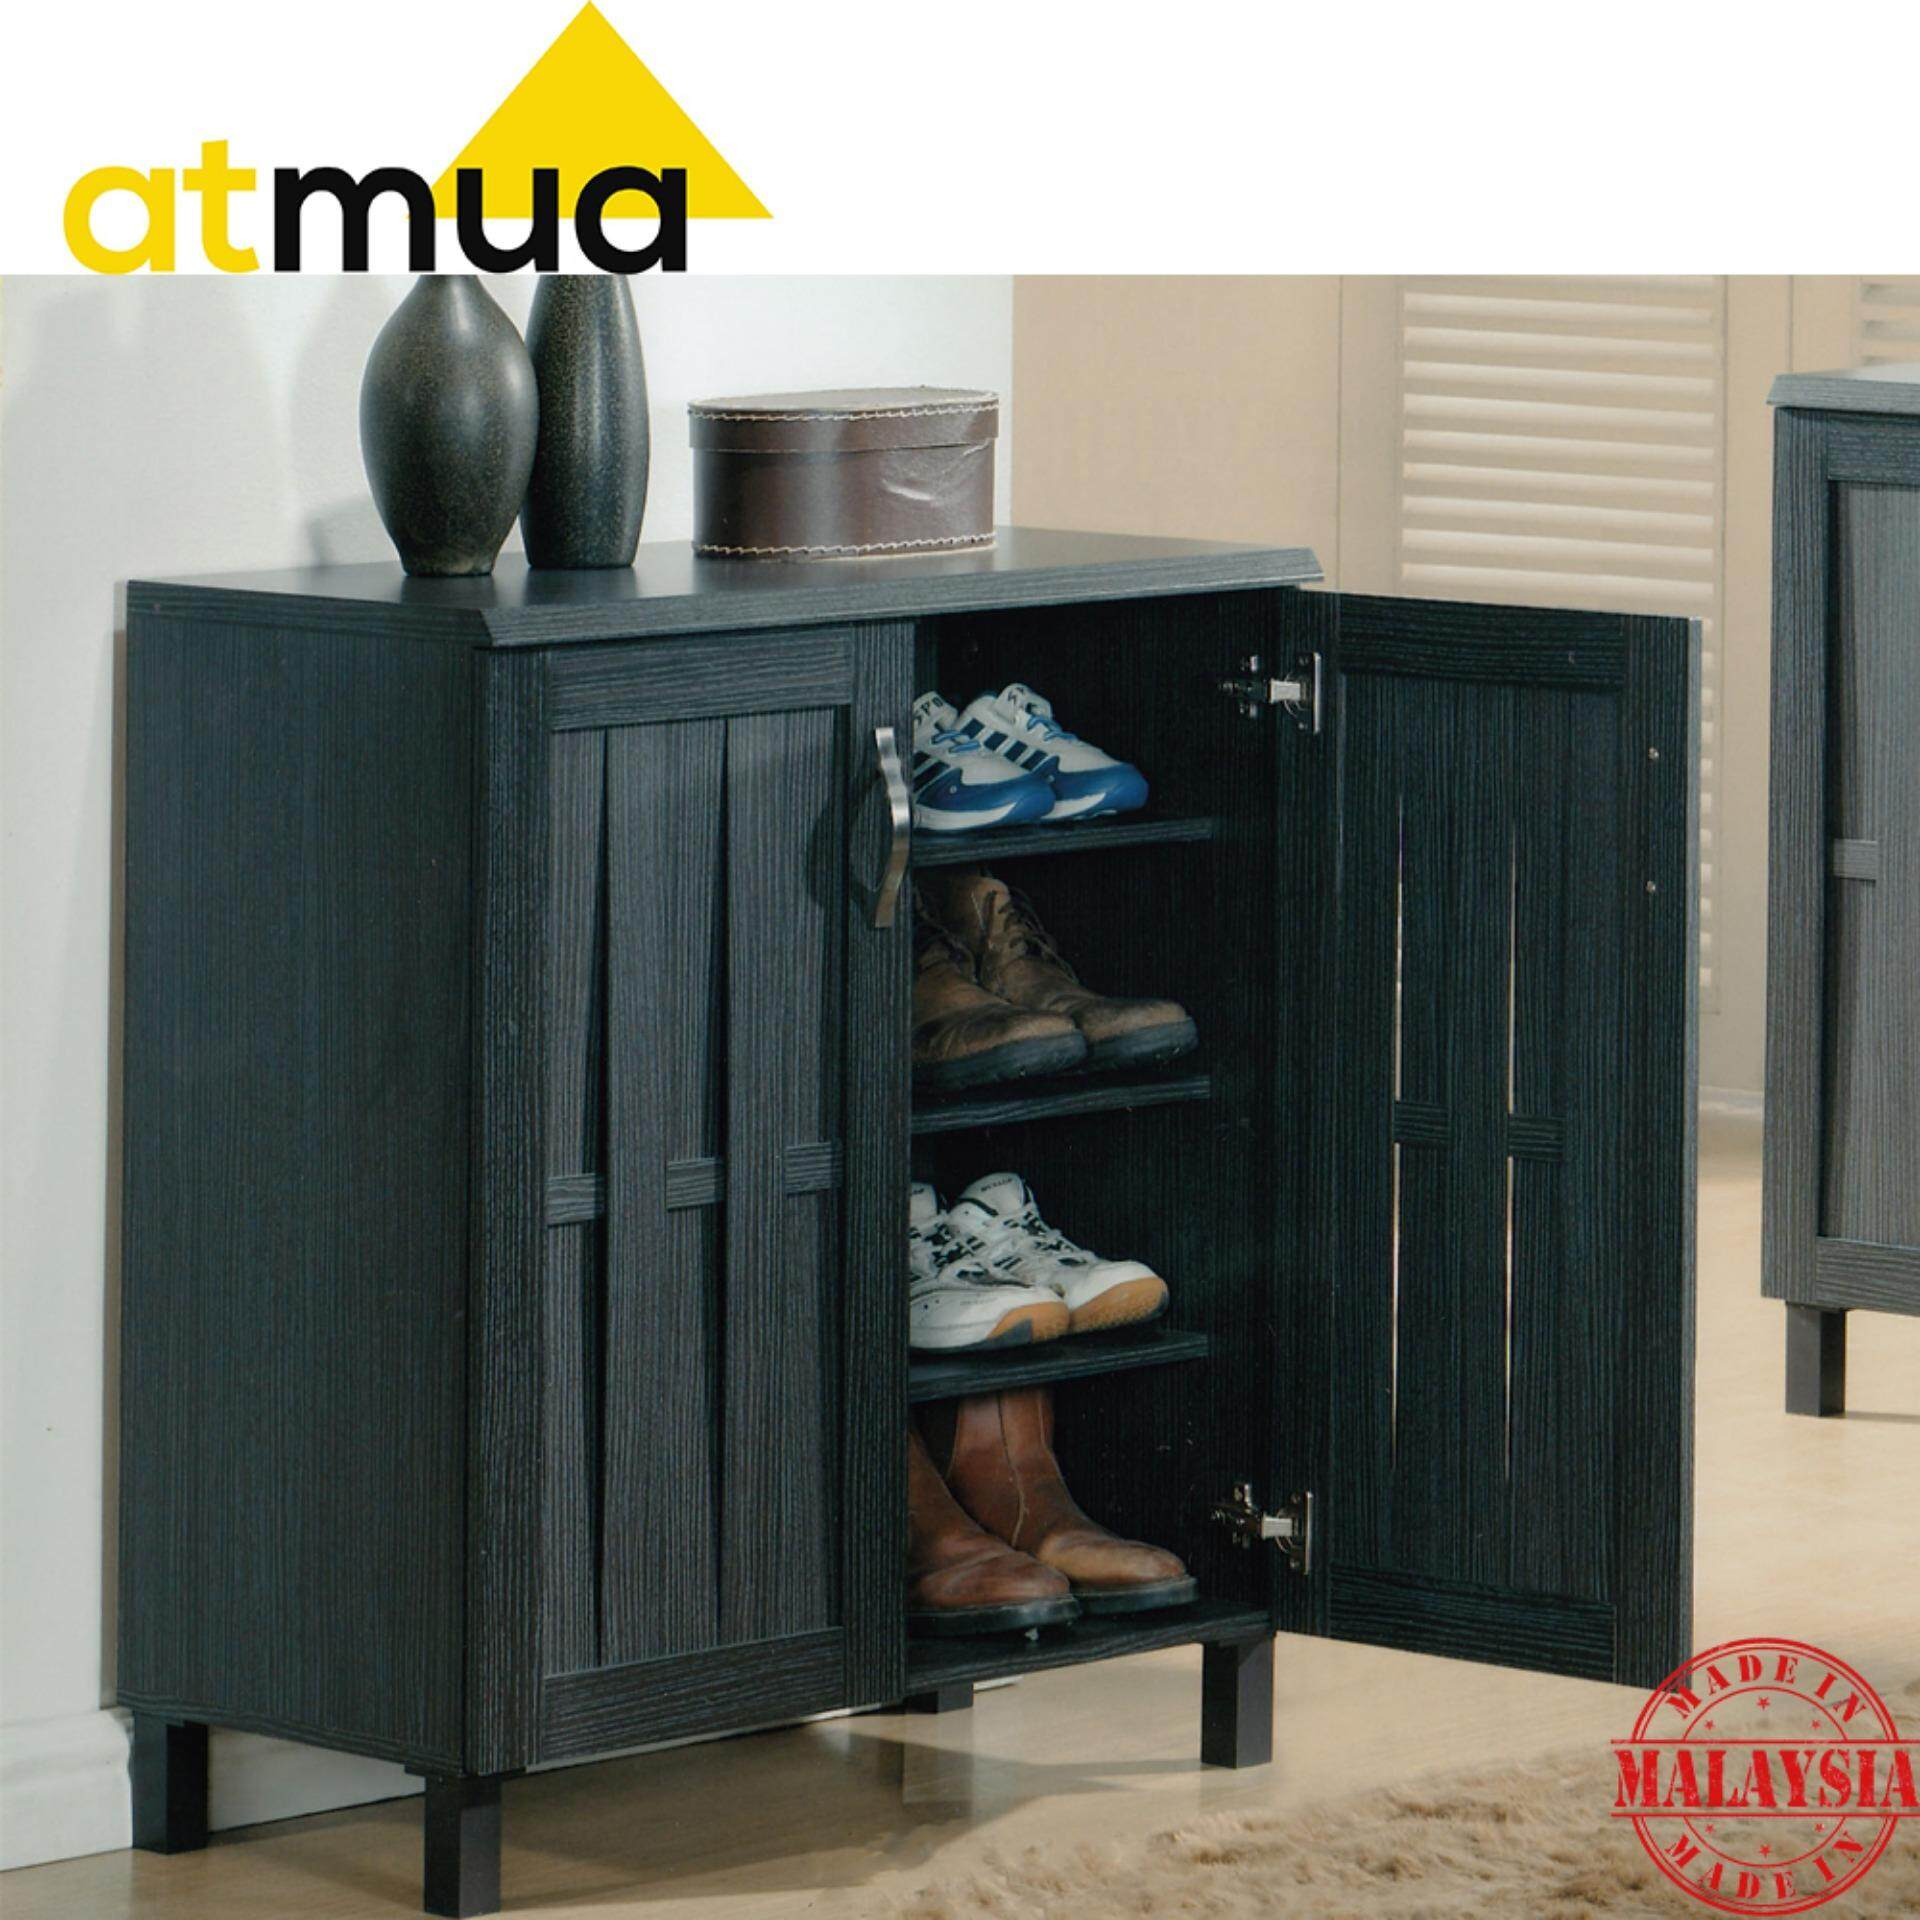 Atmua Tad Shoes Cabinet - 2 Door [Particle Board]